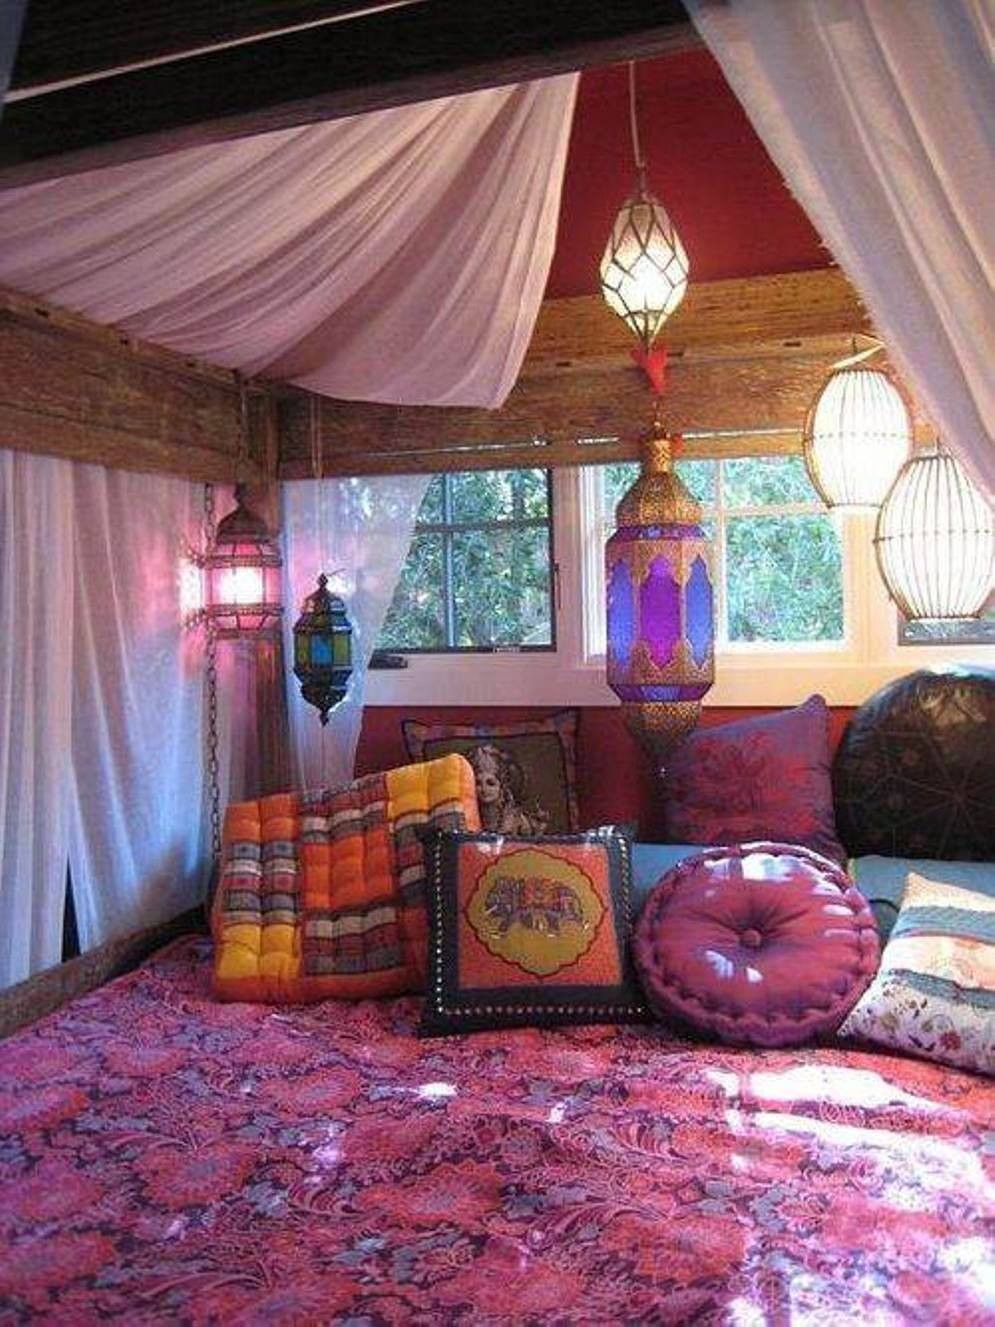 Boho Bedroom On A Budget Boho Bedroom Style Home Boho Room Room Decor